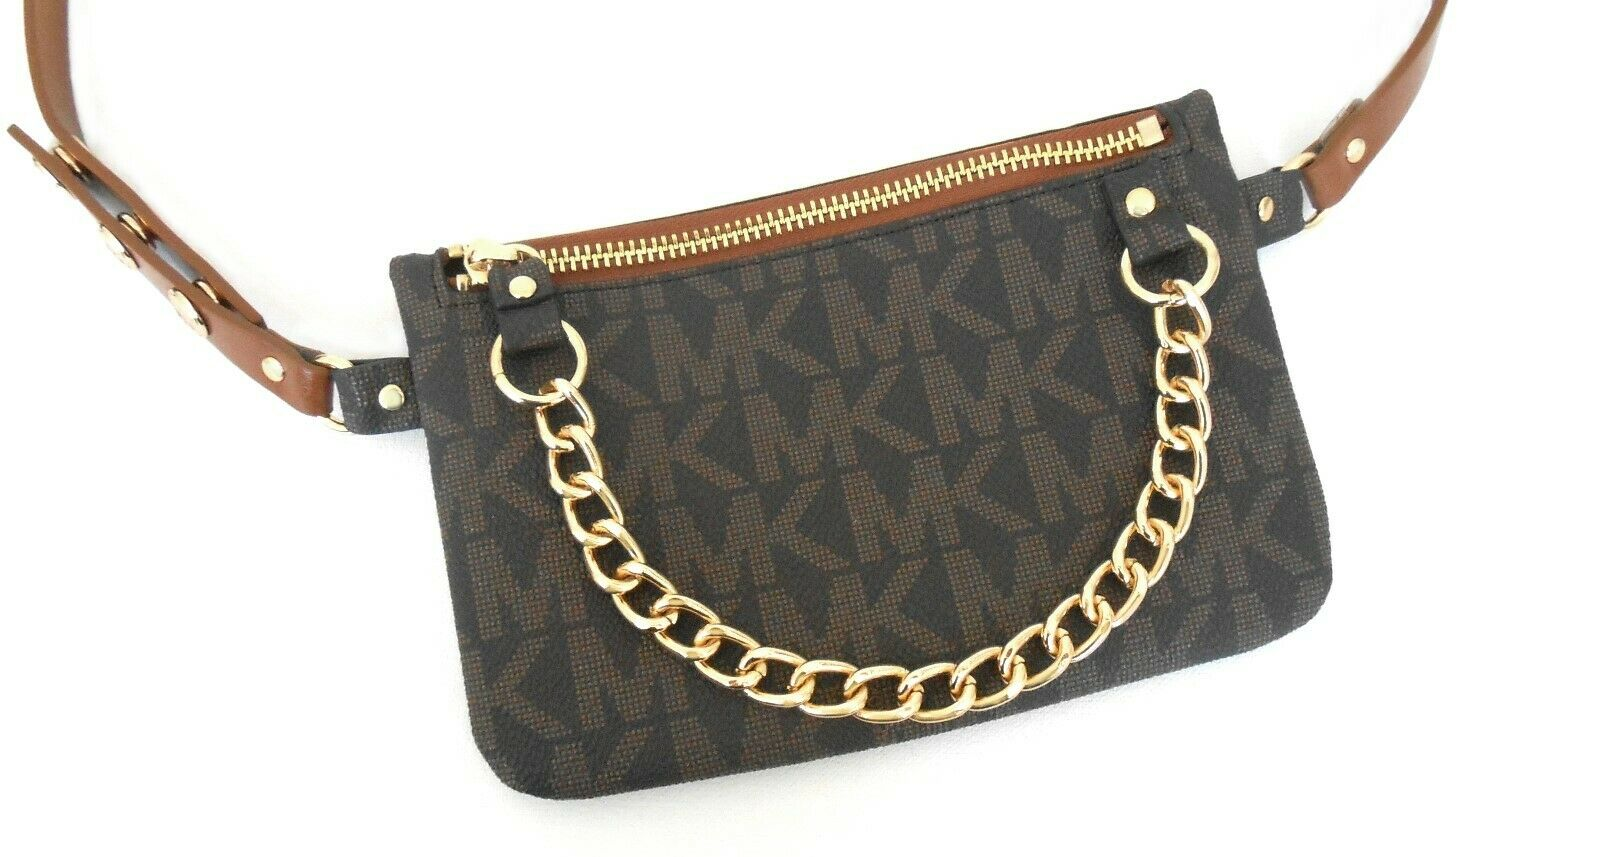 82501d9ccb1e13 ... Logo UPC 884585656421 product image for Michael Kors Belt Bag Mk  Signature Logo Fanny Pack Size Large